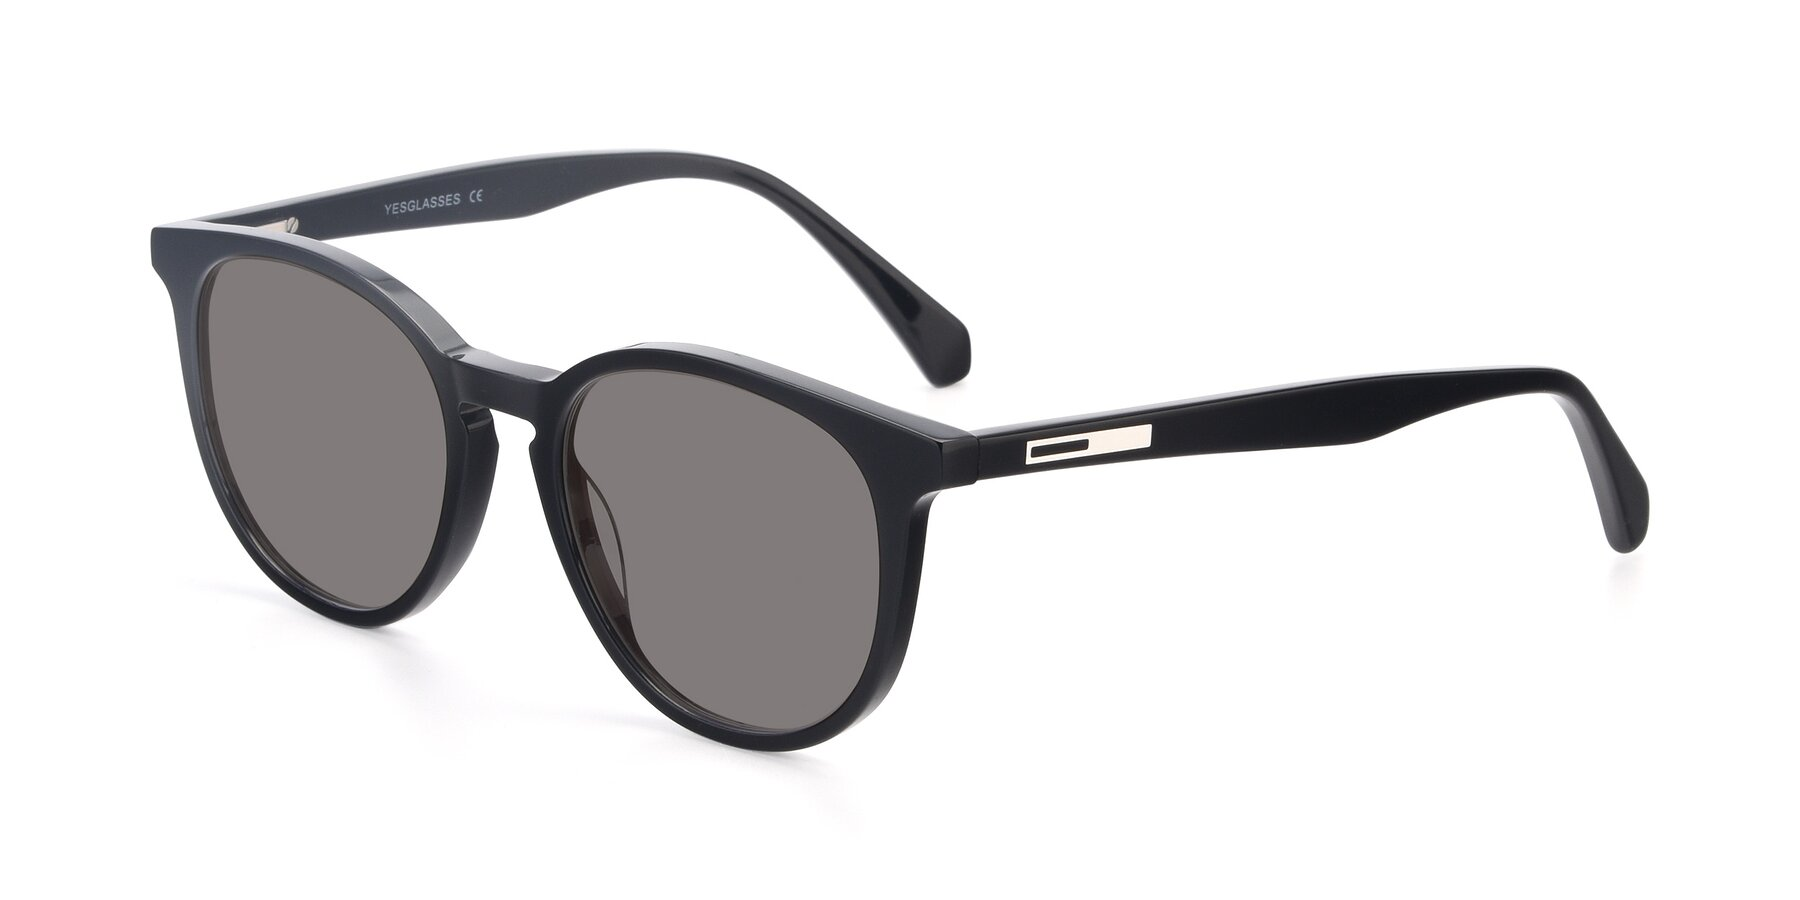 Angle of 17721 in Black with Medium Gray Tinted Lenses